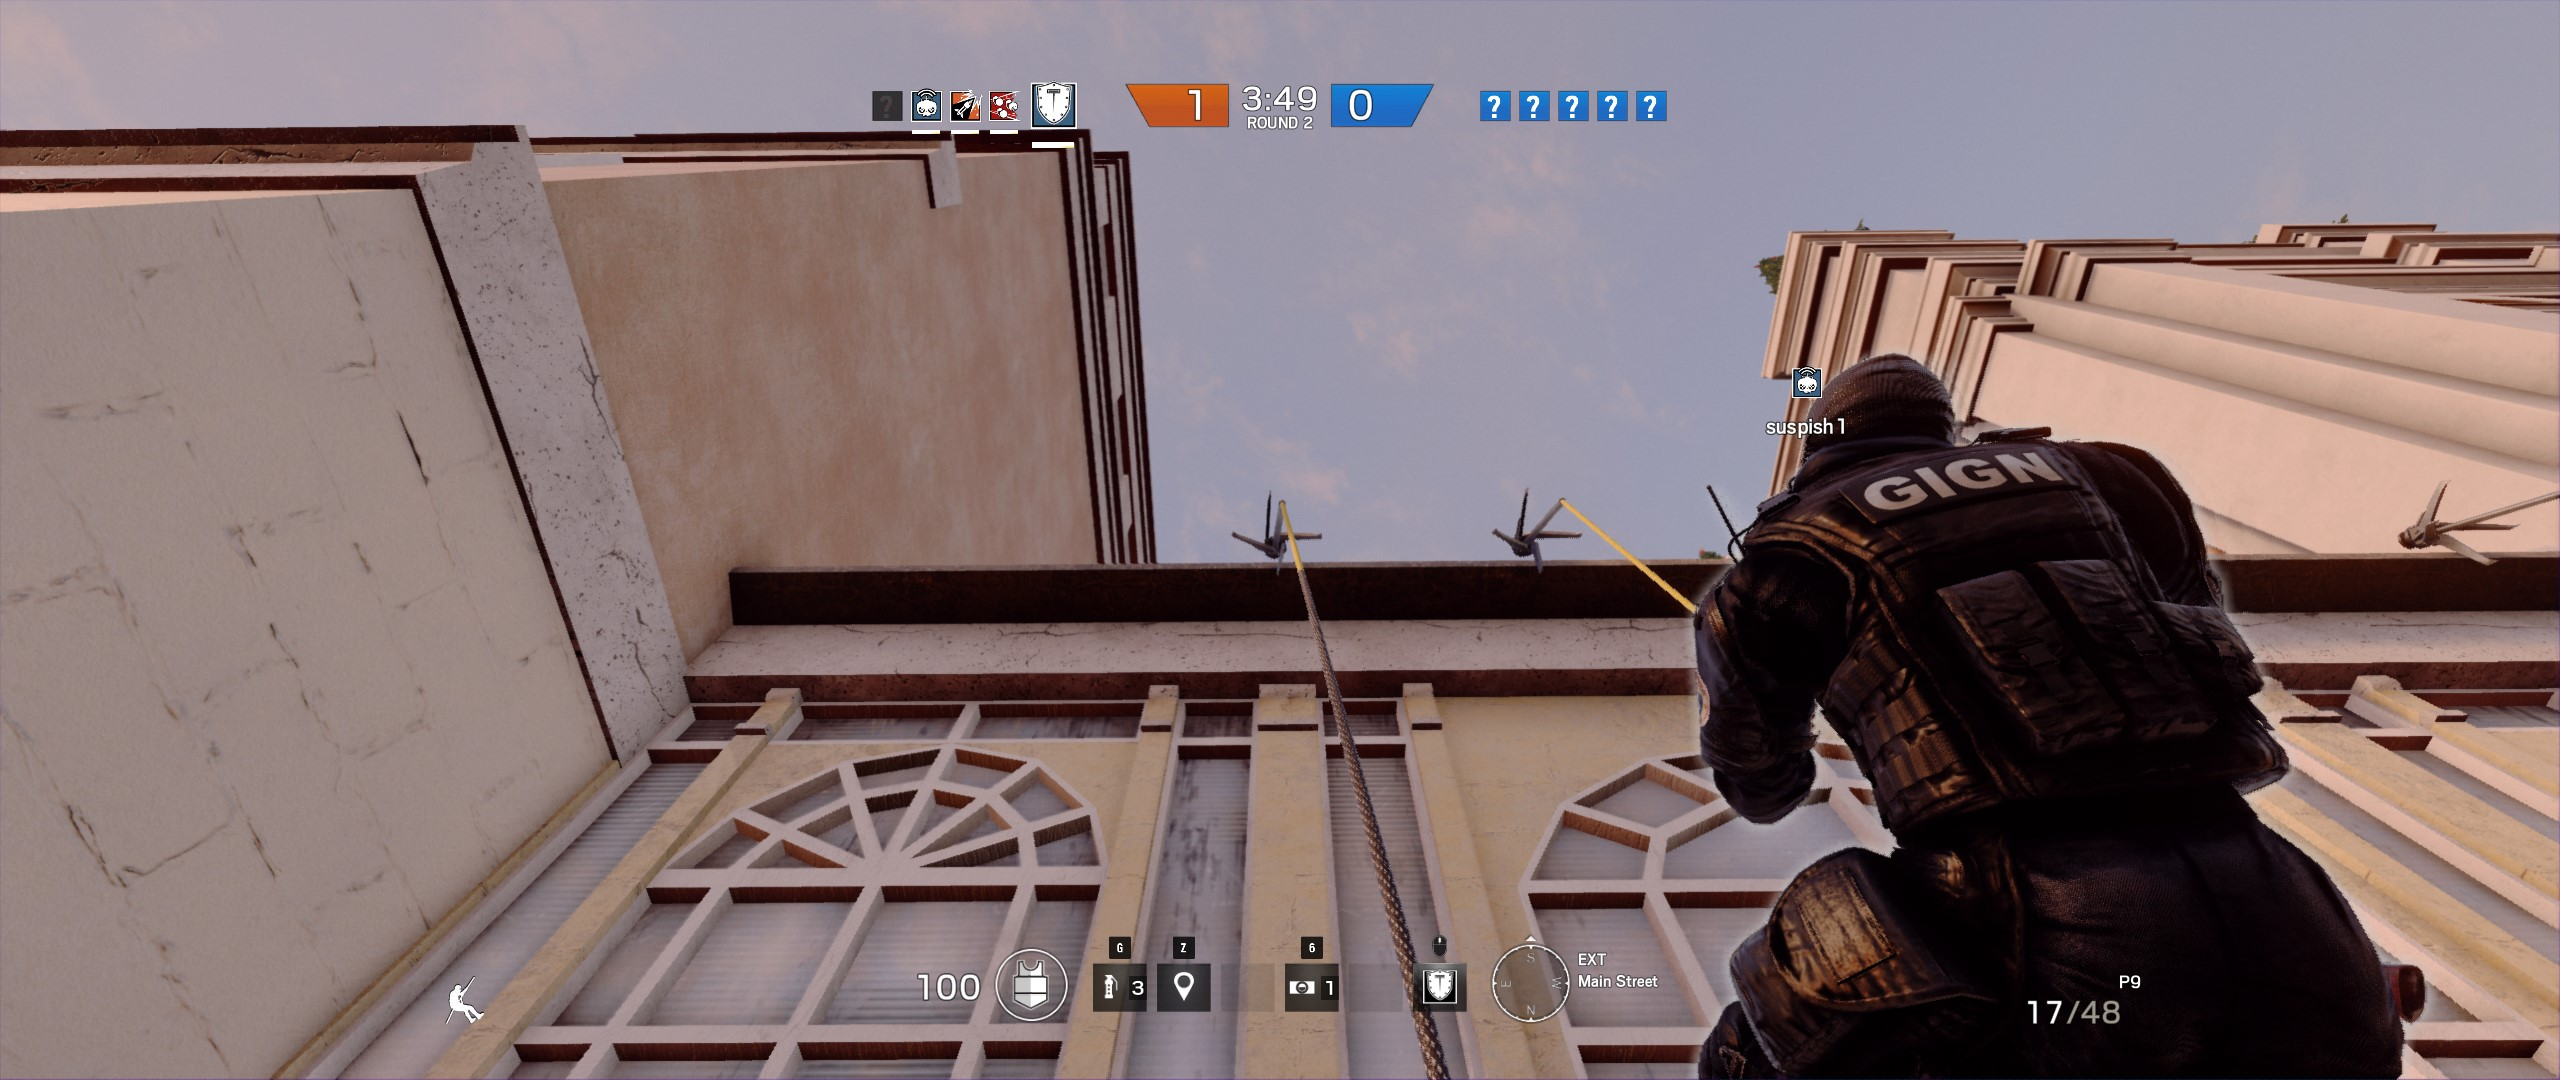 how to get more than 20 fps on rbs siege